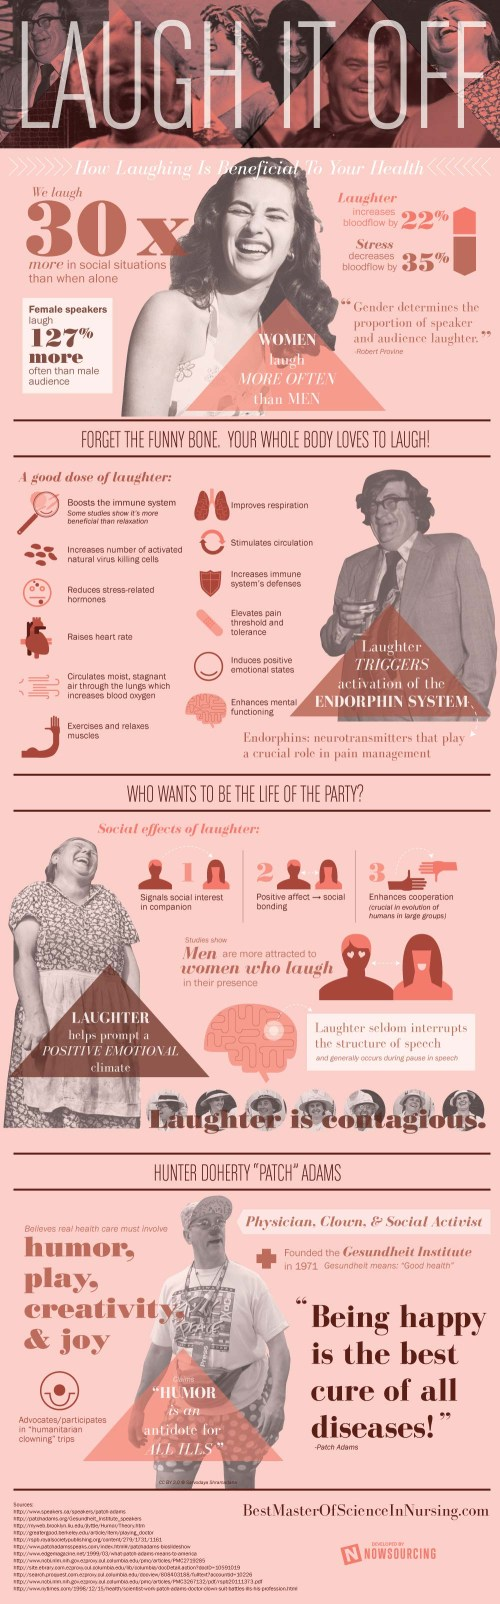 Laugh-It-Off-Infographic-infographicsmania.jpg